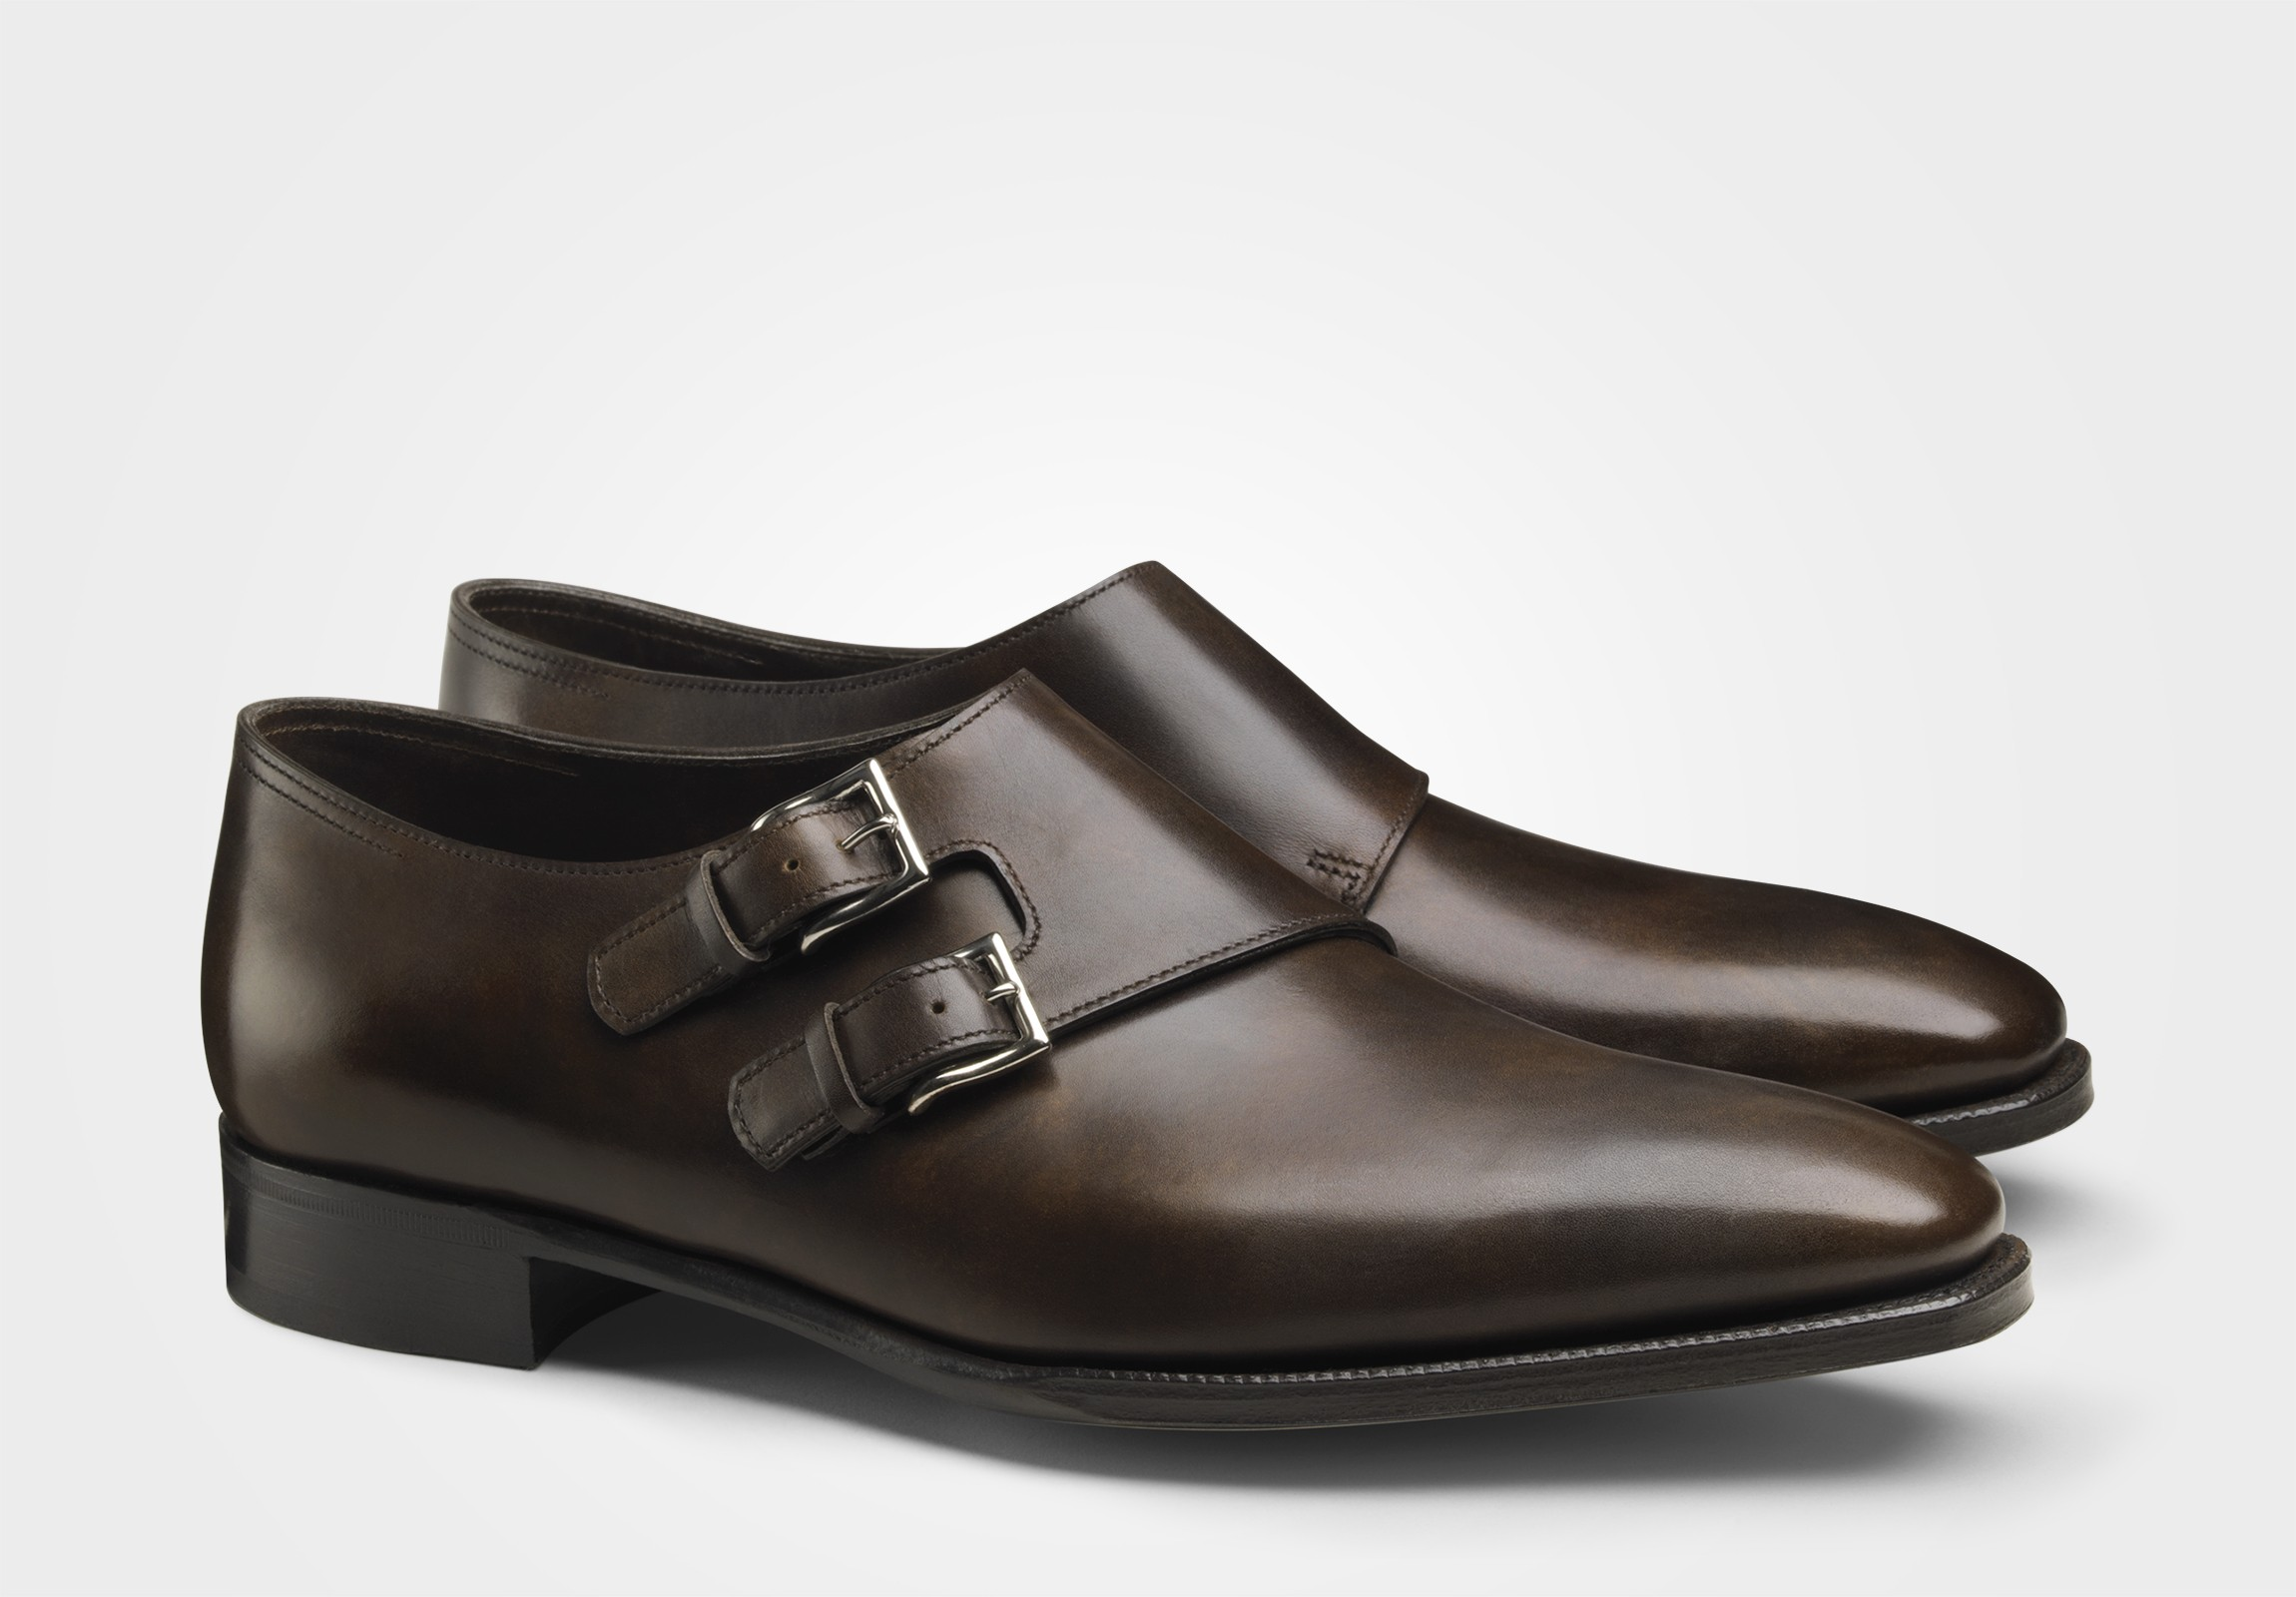 John Lobb Chapel double monkstrap dark Brown museum dress shoes